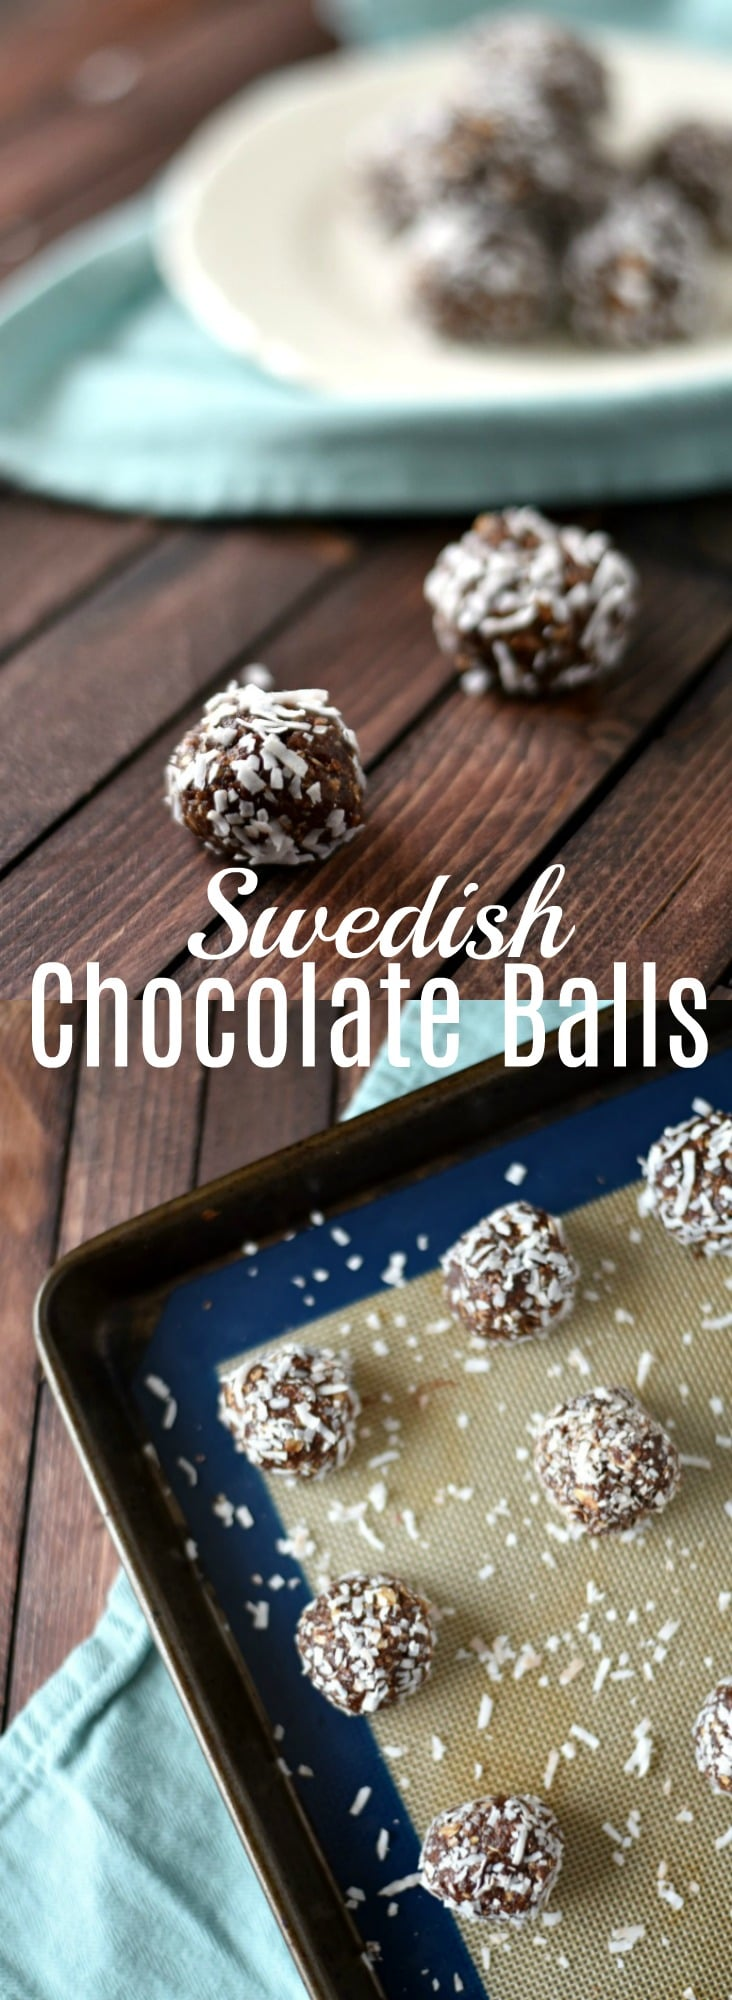 Swedish Chocolate Balls (Chokladbollar)- Easy No Bake Recipe - This no-bake recipe for Swedish Chocolate Balls (also known as Chokladbollar), is very simple to make, & the perfect make-ahead dessert you can do with a child.